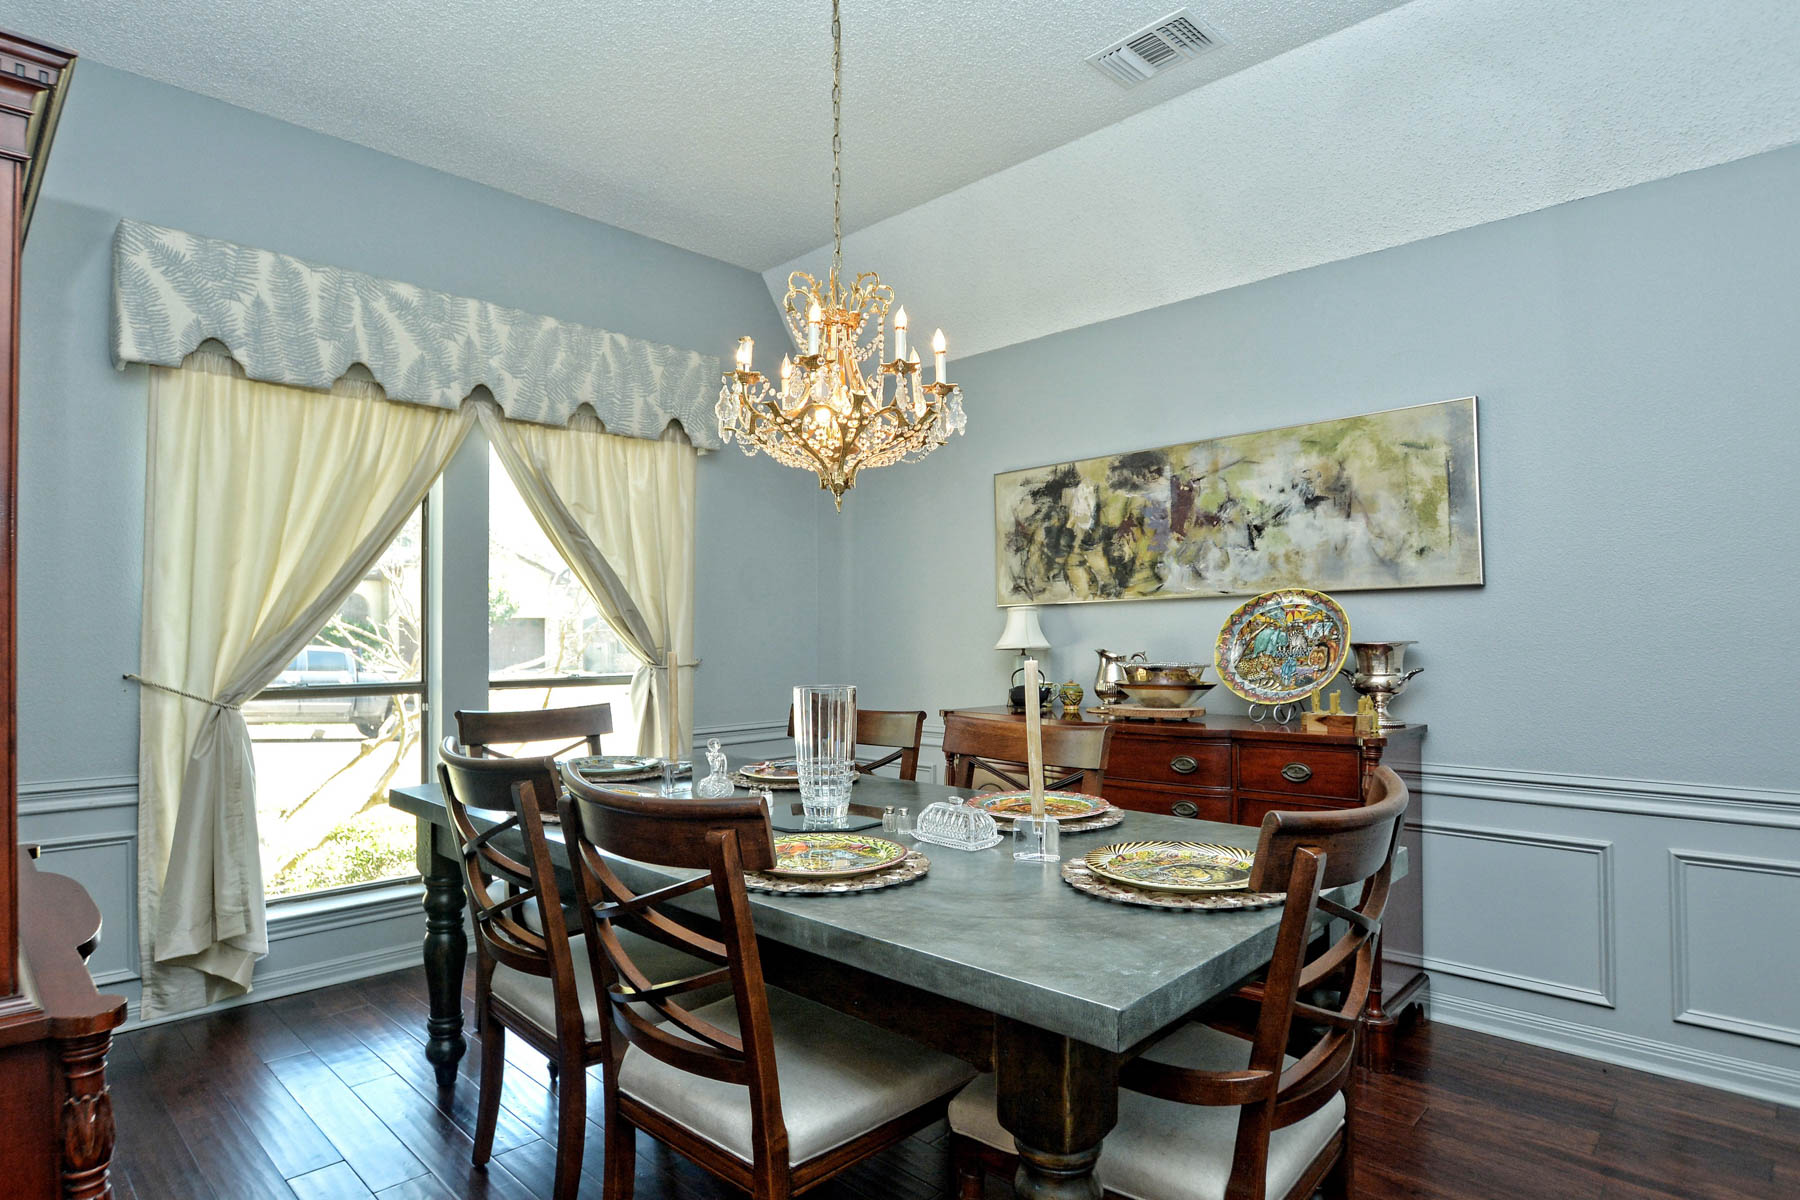 Additional photo for property listing at Elegant Home in Whispering Oaks 11415 Whisper Breeze San Antonio, Texas 78230 United States